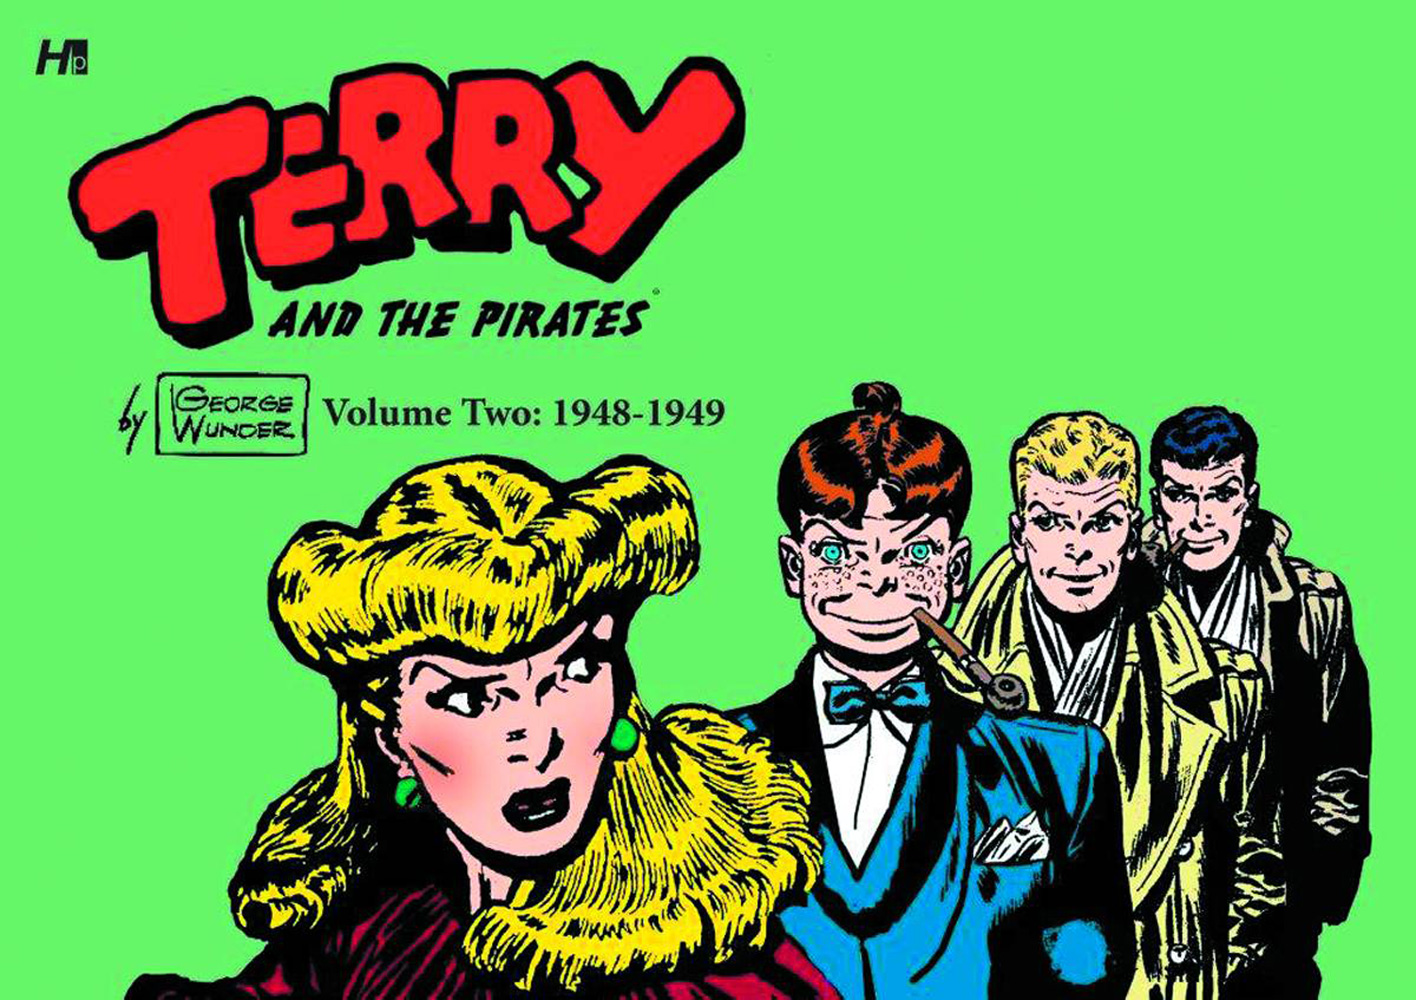 Terry and the Pirates: The George Wunder Years Volume 2 1948-1949